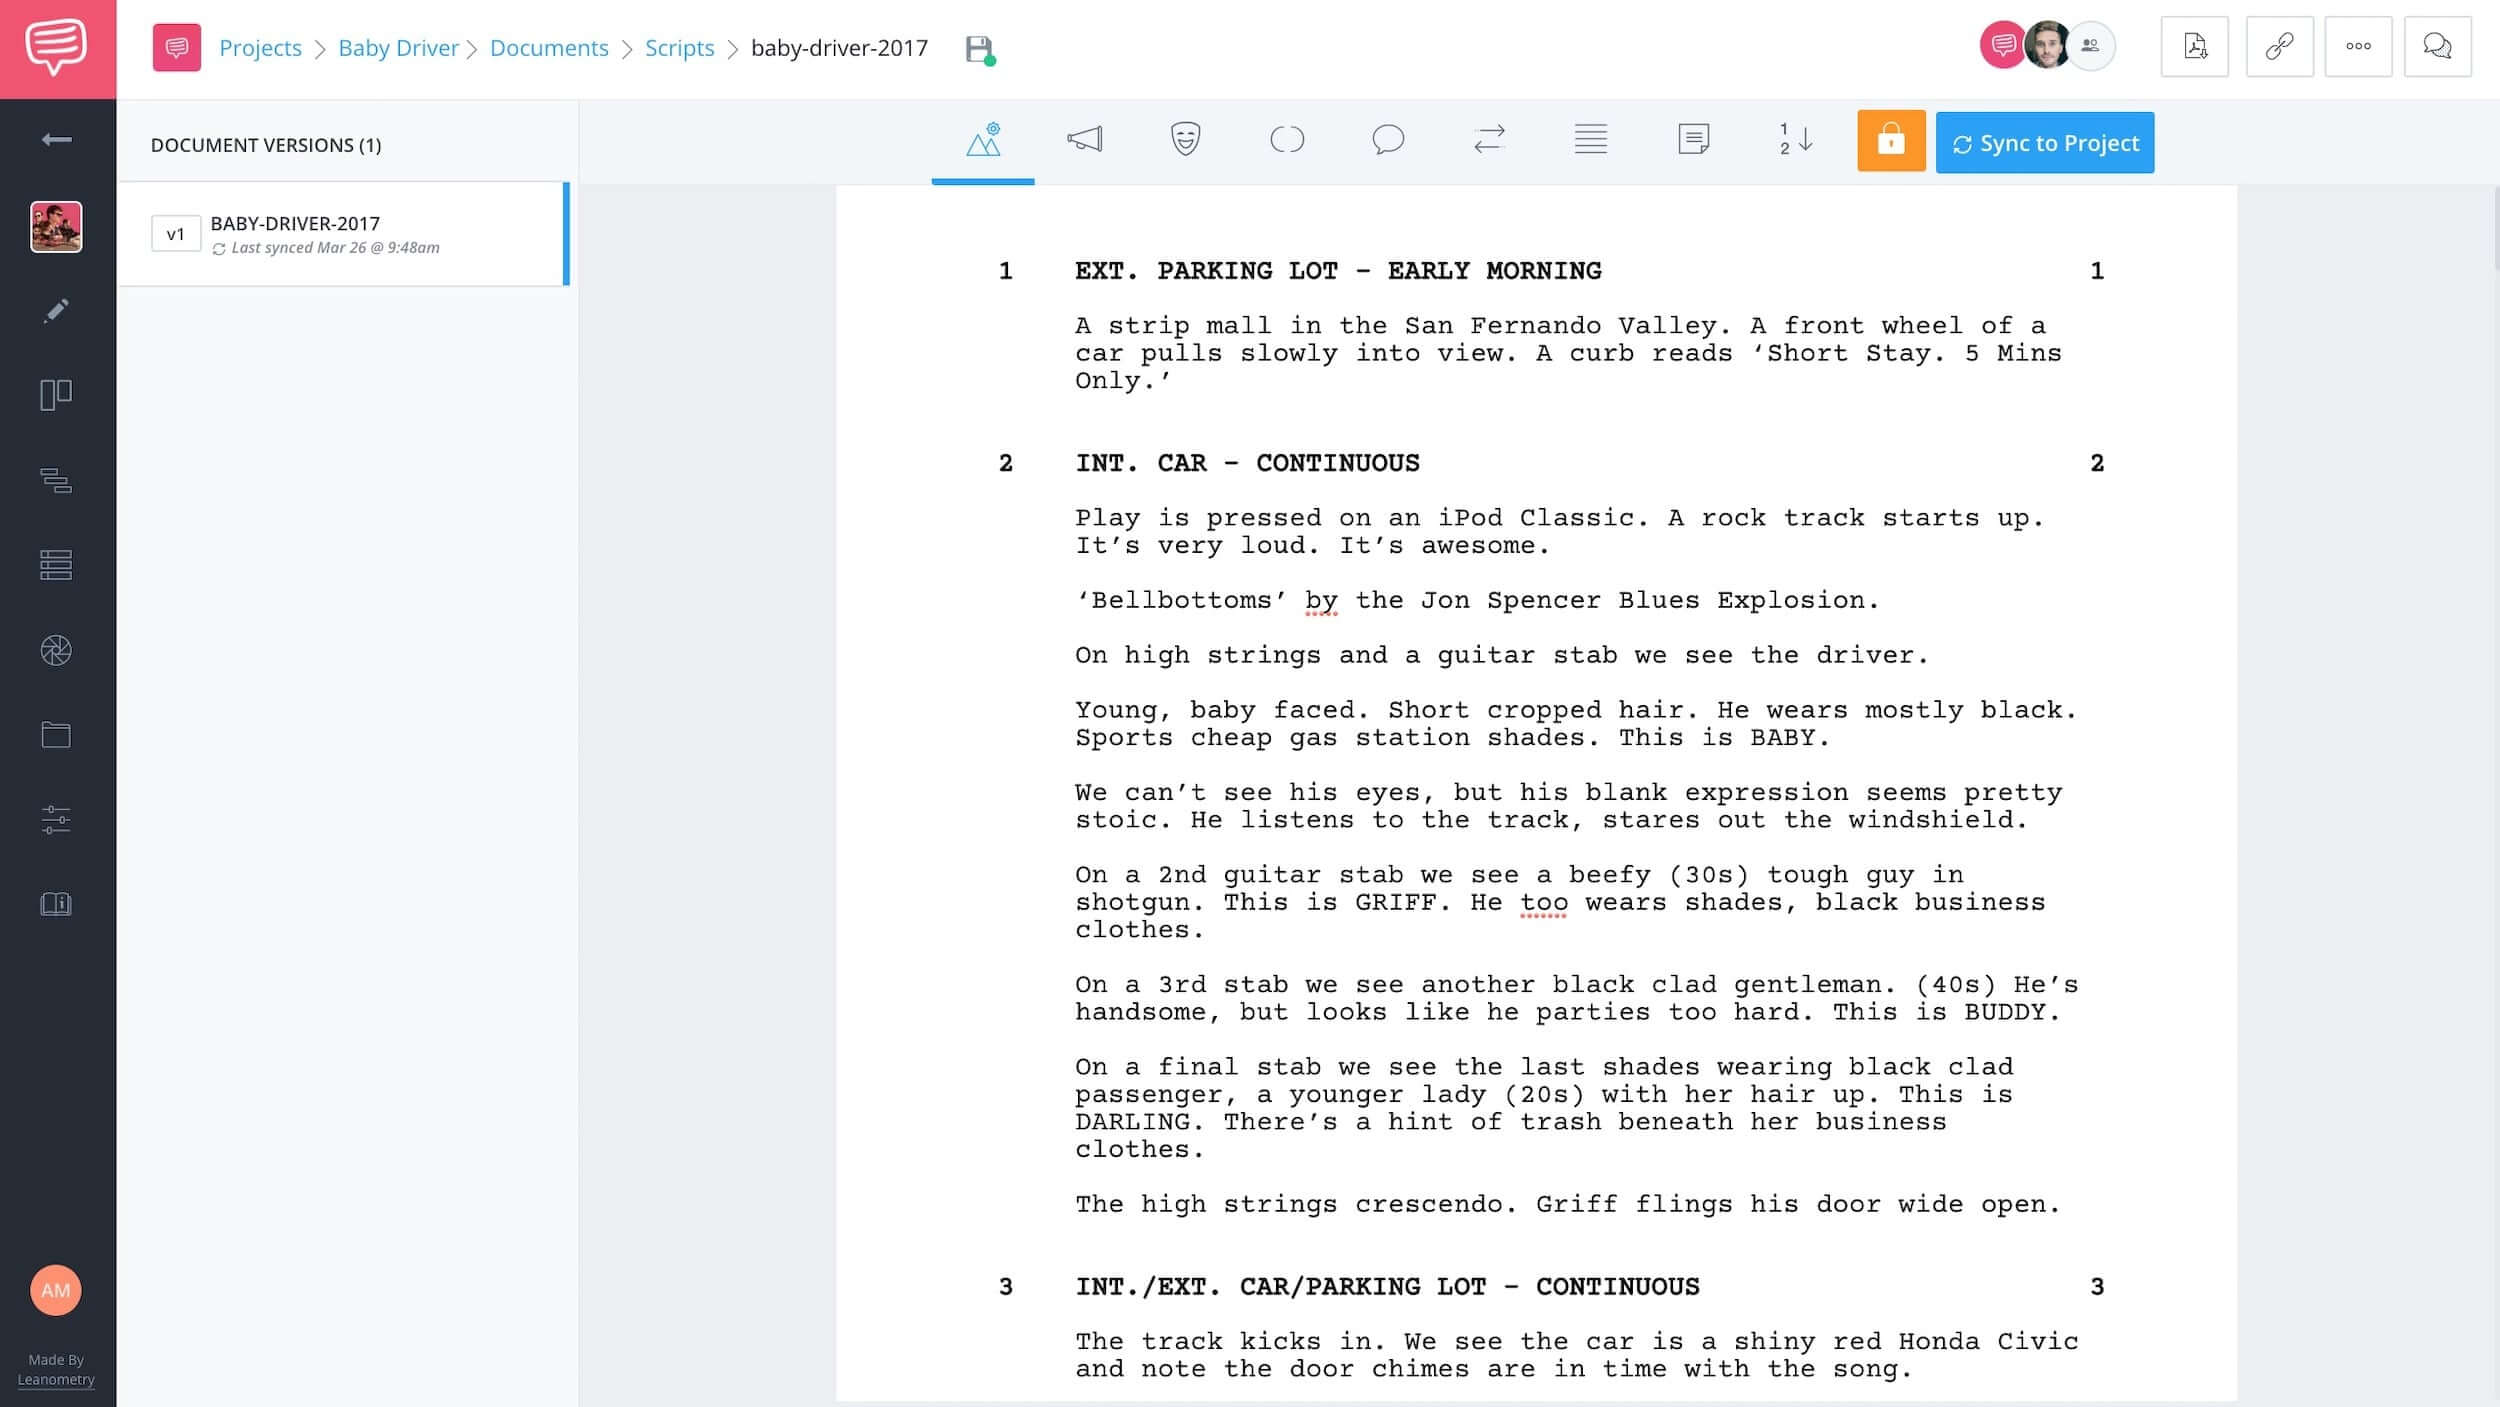 How to Write a Car Chase Scene - Baby Driver Script - StudioBinder Screenwriting Software